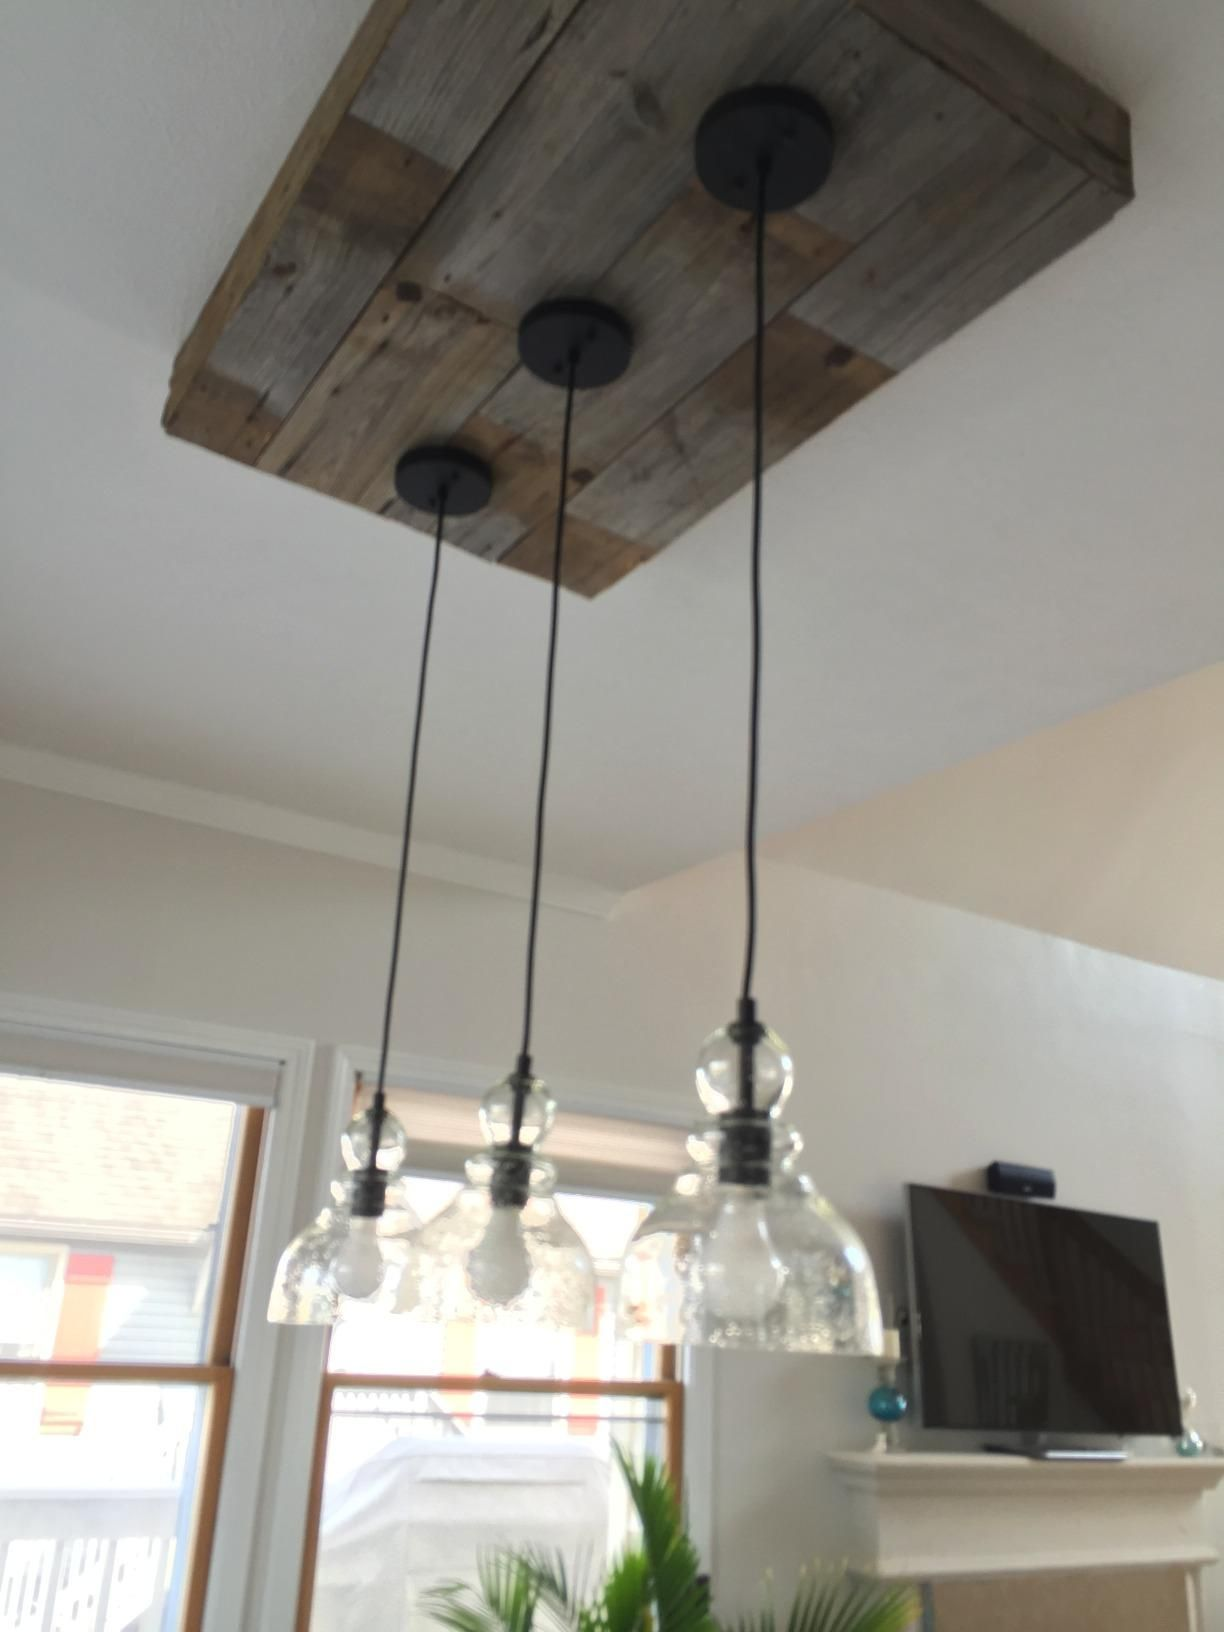 Amazon westinghouse 6100800 industrial one light adjustable amazon westinghouse 6100800 industrial one light adjustable mini pendant with handblown clear arubaitofo Gallery